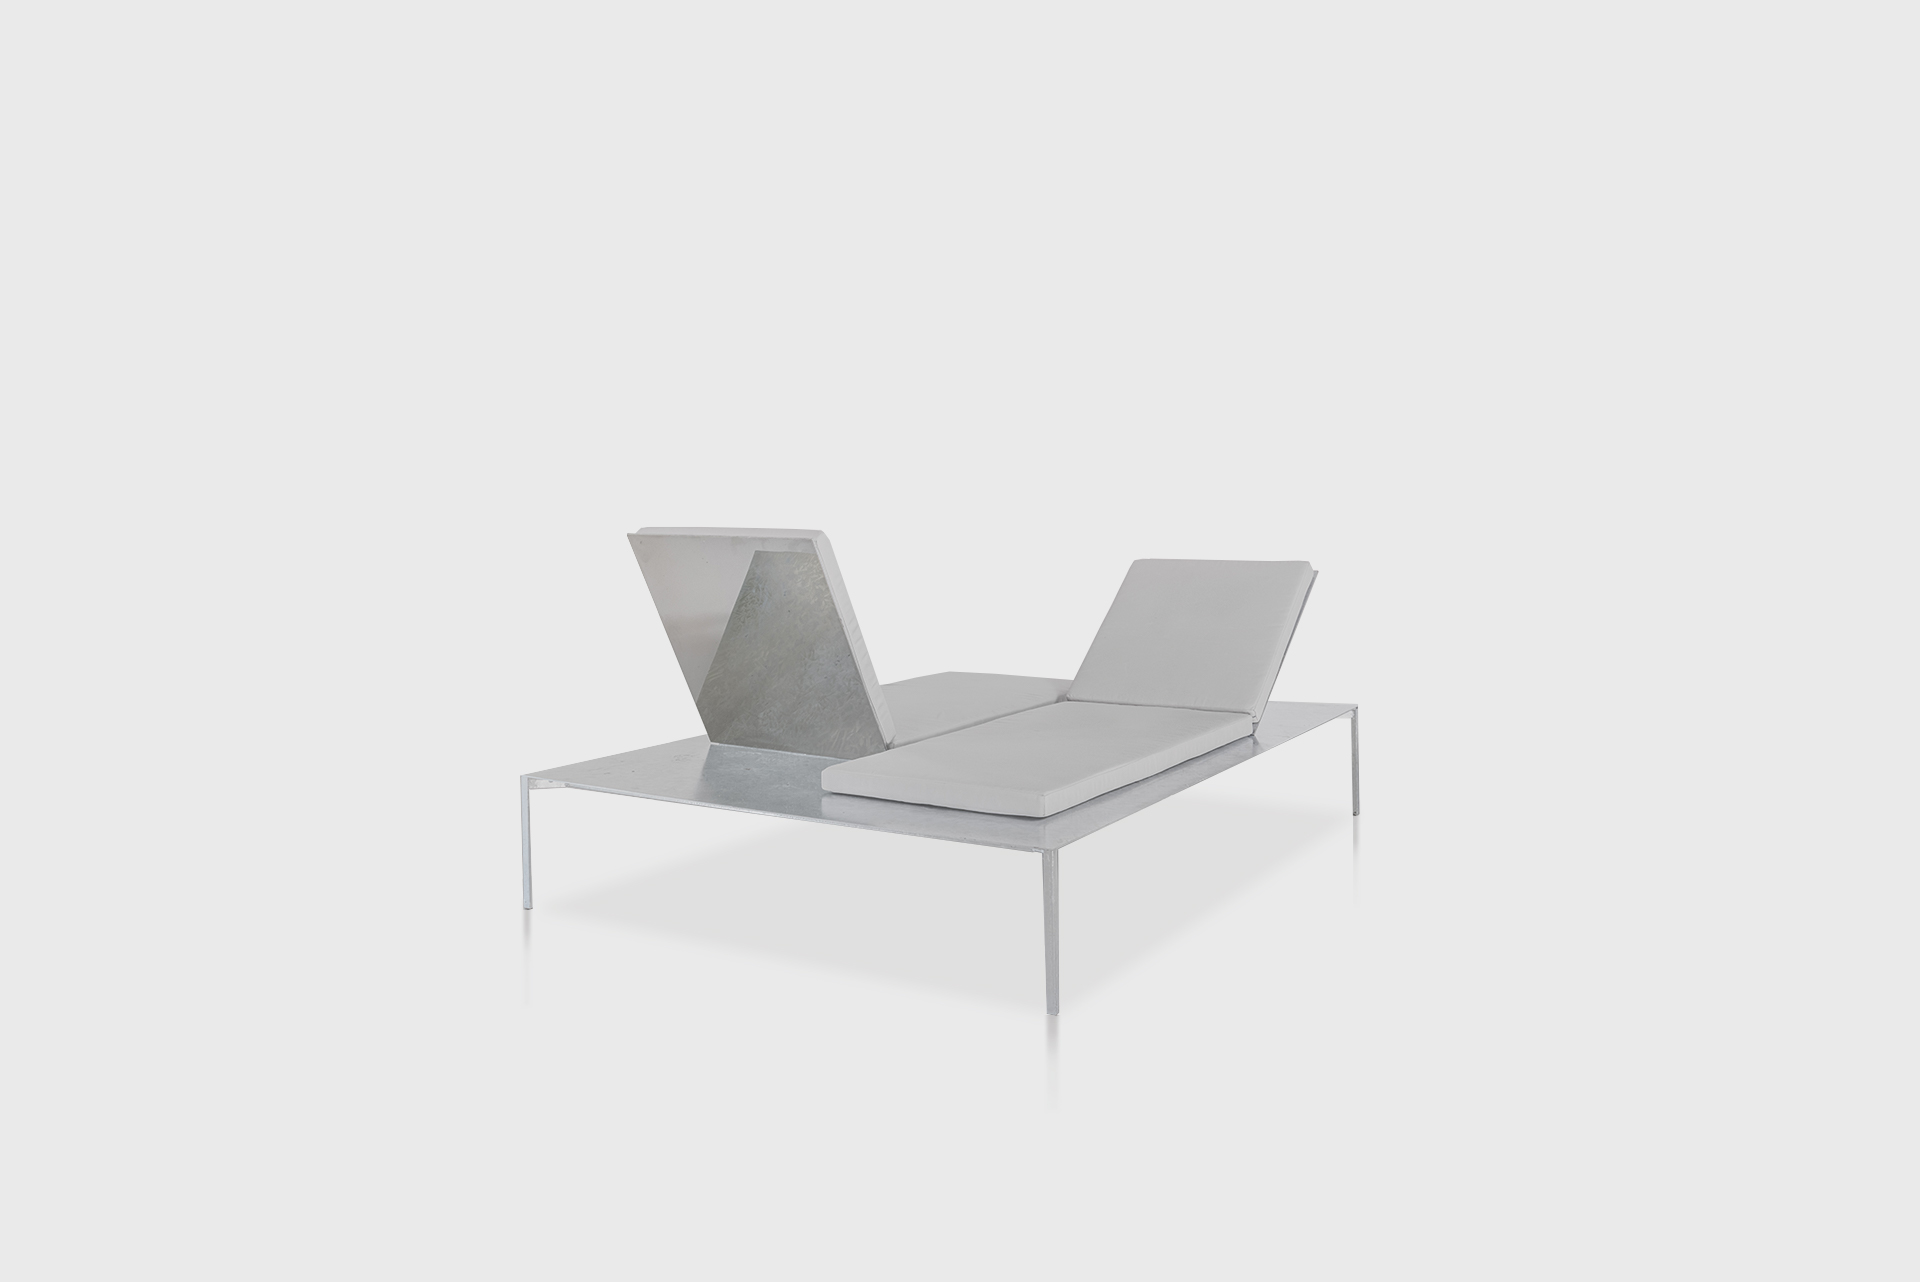 """Patio Furniture Double Sun Chair From the series """"Beasts"""" Produced in exclusive for SIDE GALLERY Manufactured by ERTL und ZULL Berlin, 2021 Galvanized steel, upholstery"""